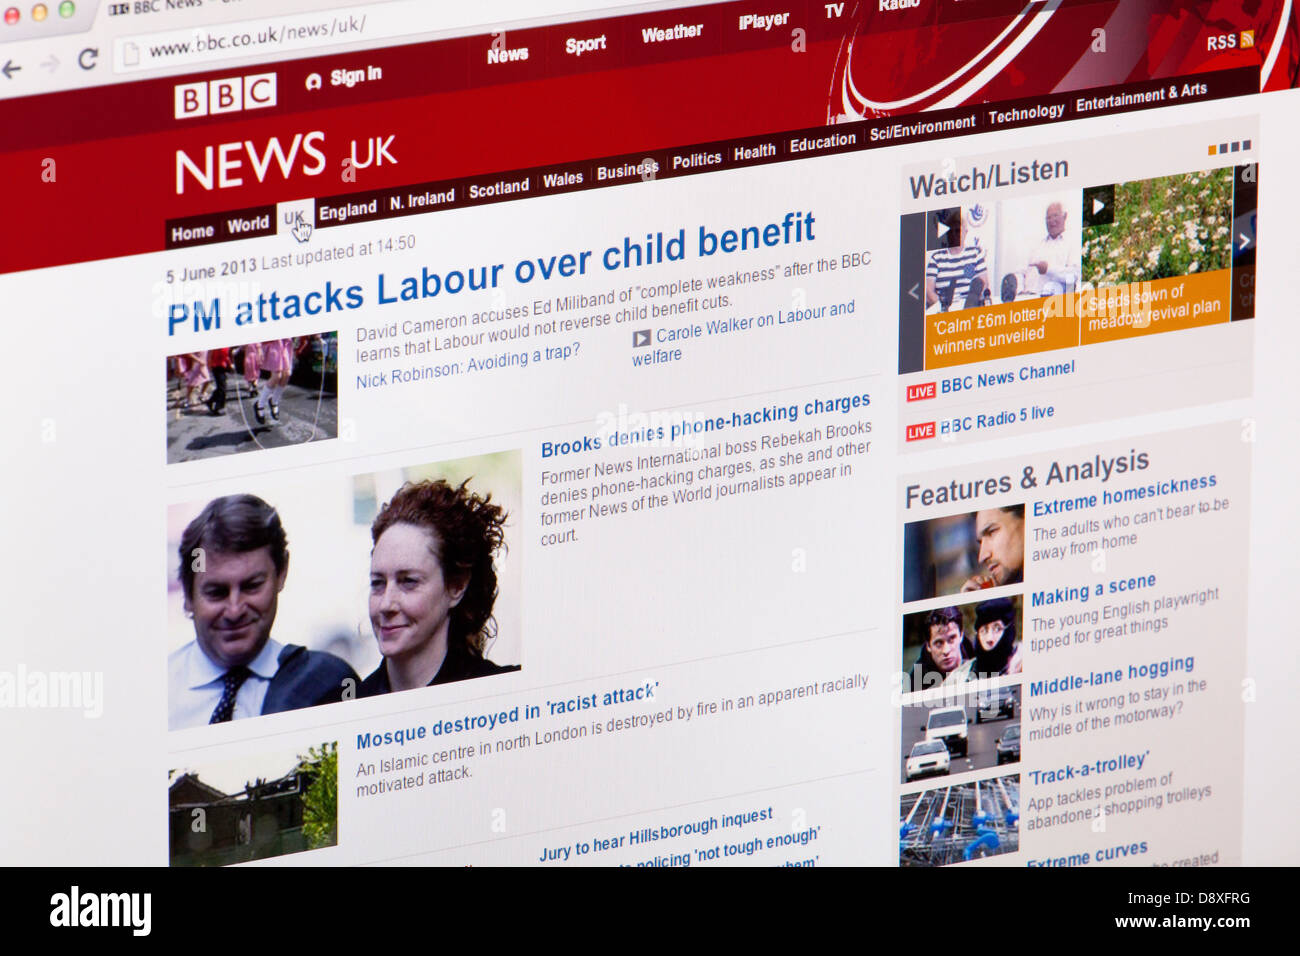 BBC news UK home page Website or web page on a laptop screen or computer monitor - Stock Image